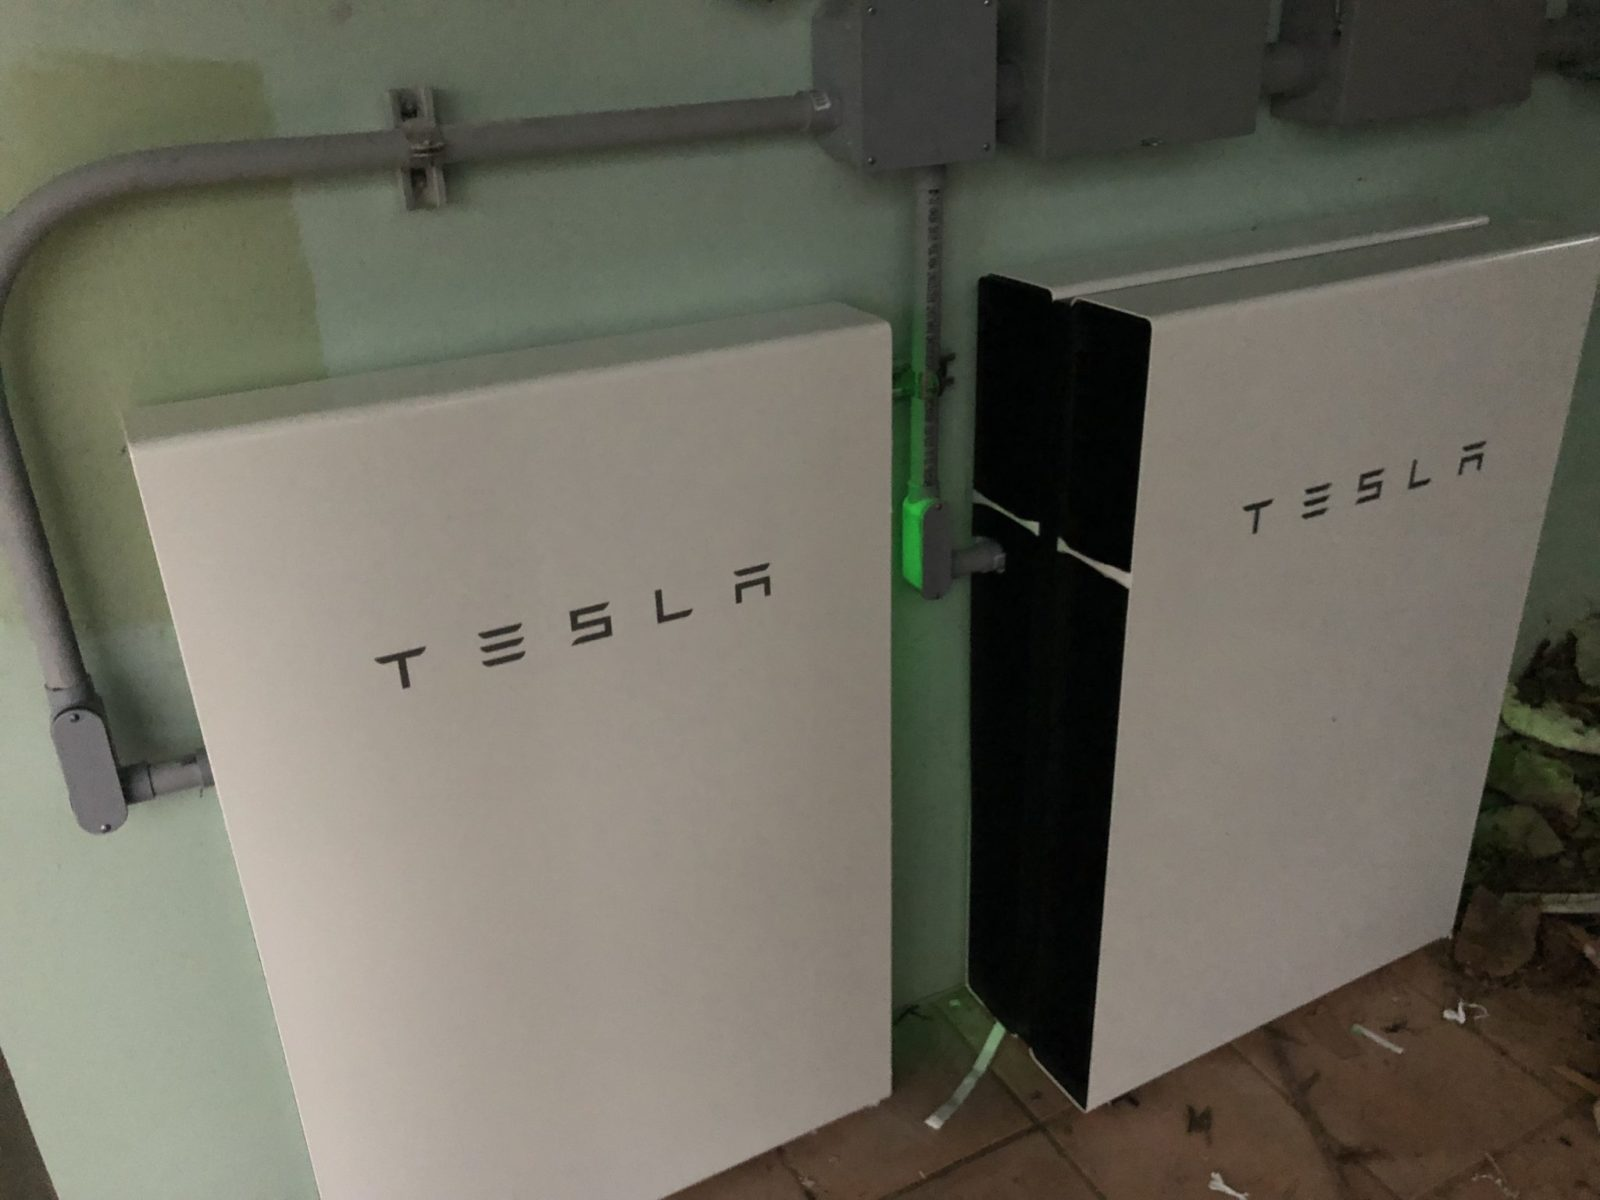 The Powerwall lit up and charging